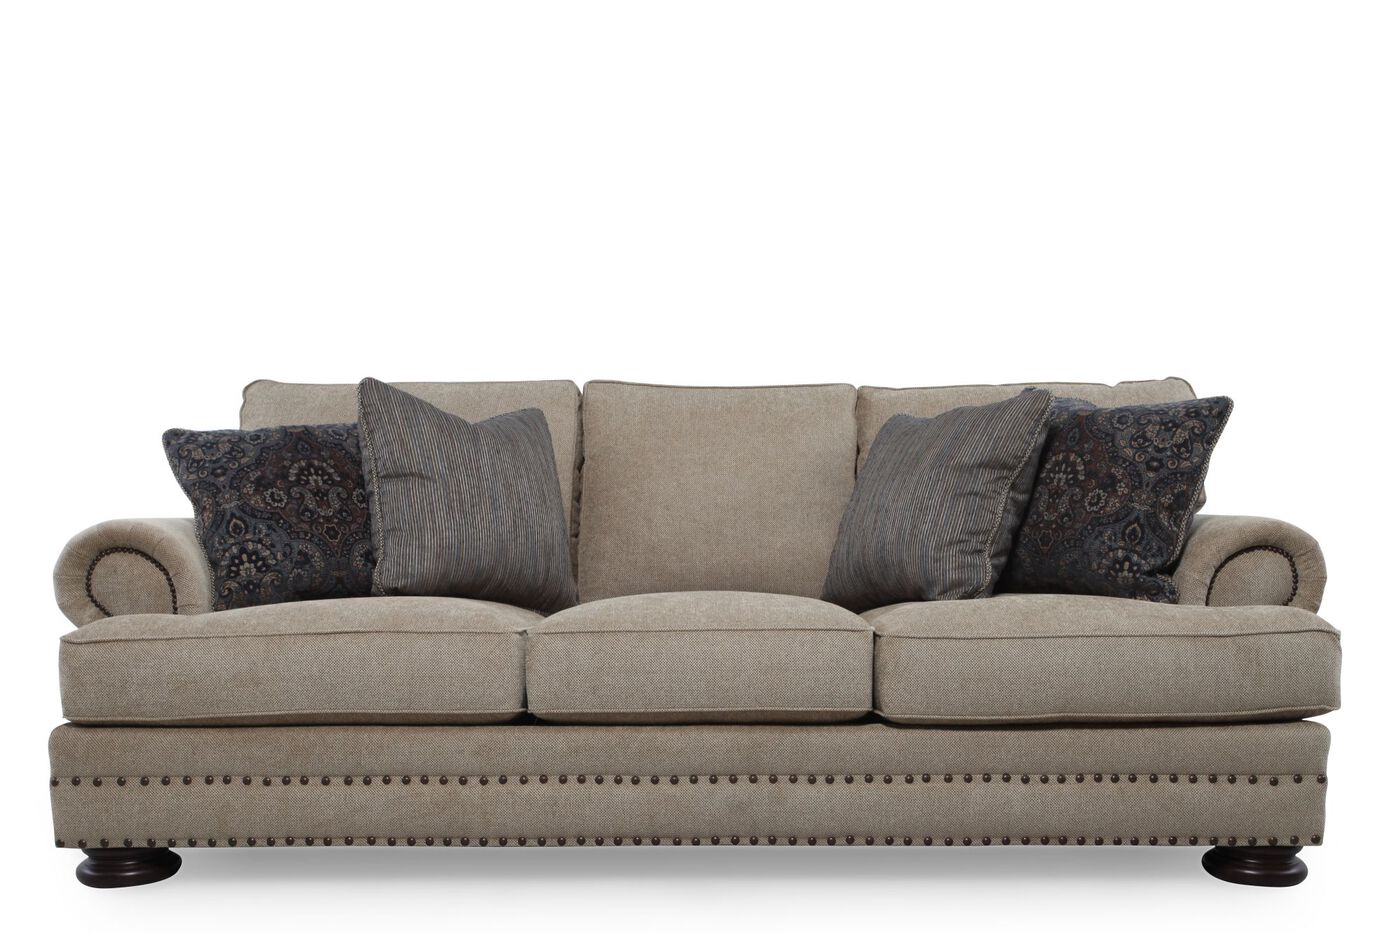 Bernhardt foster brown sofa mathis brothers furniture Bernhardt living room furniture